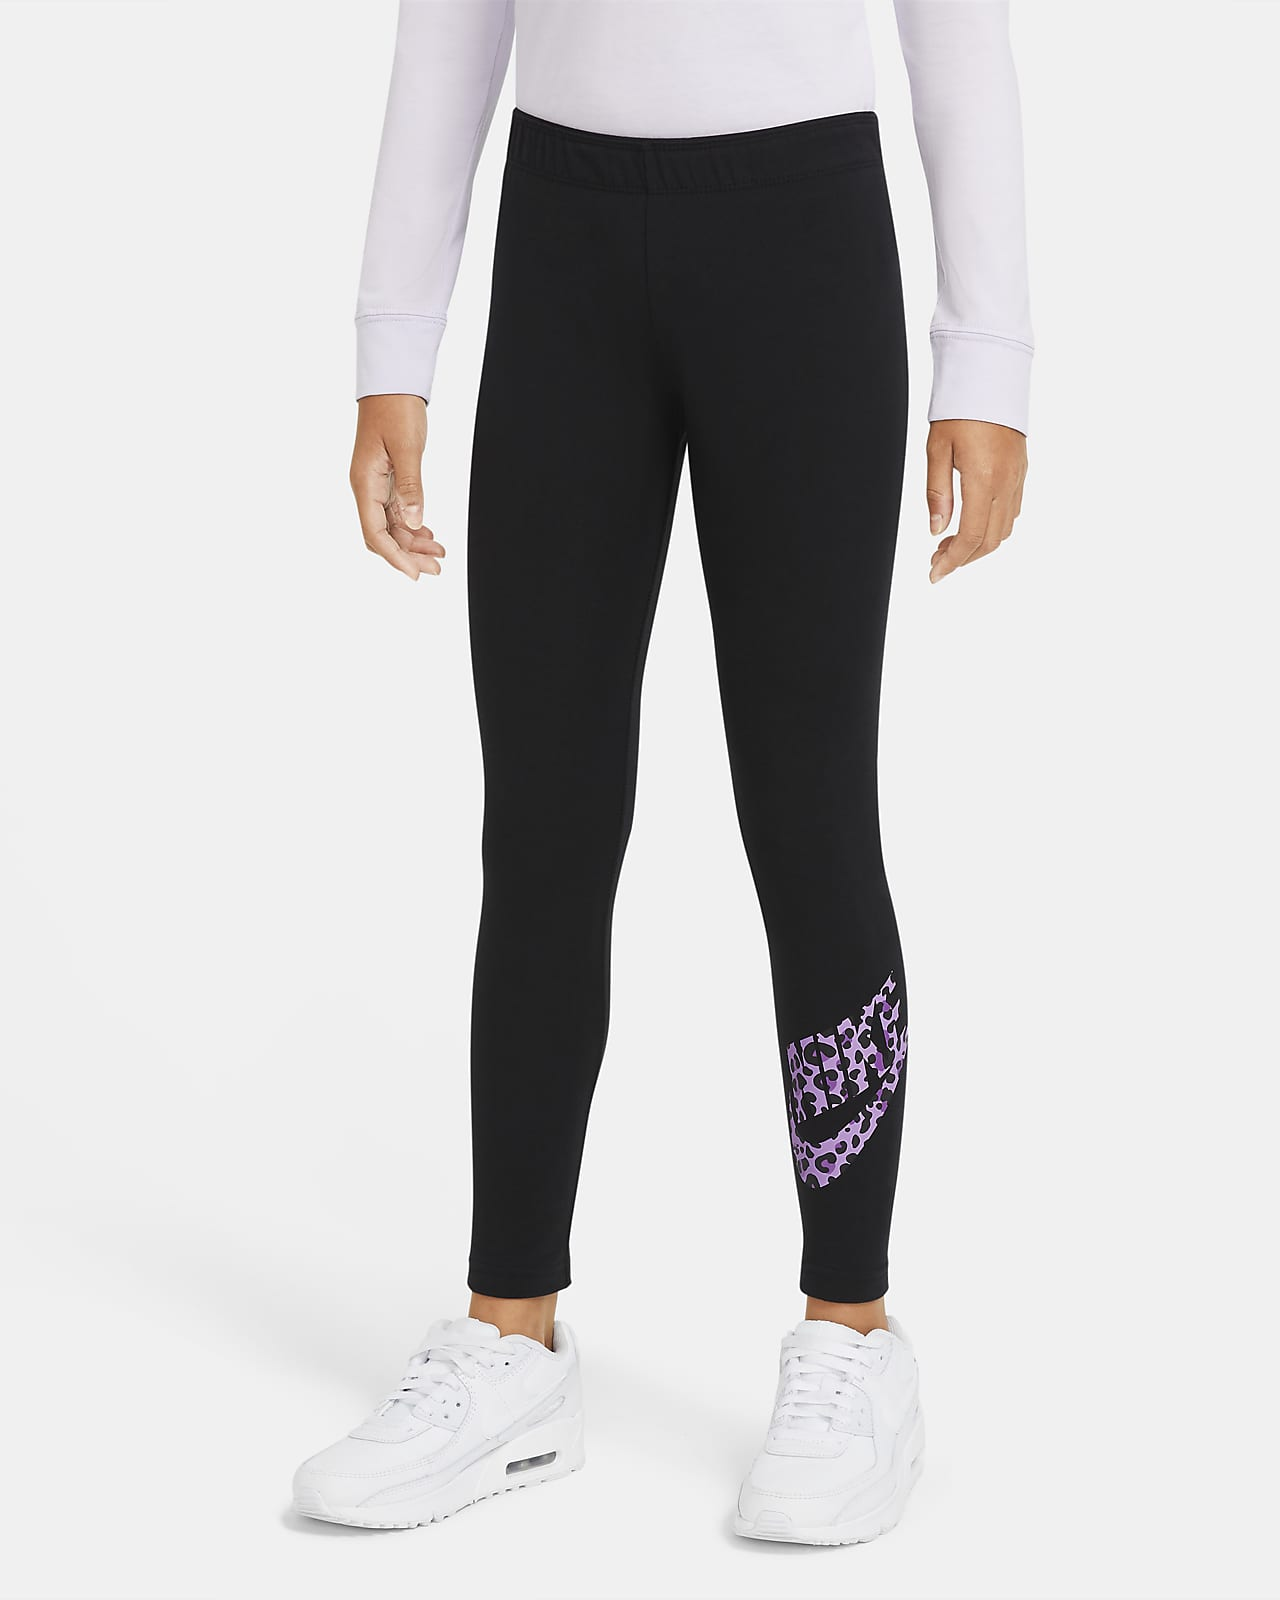 Nike Sportswear Older Kids' (Girls') Leggings